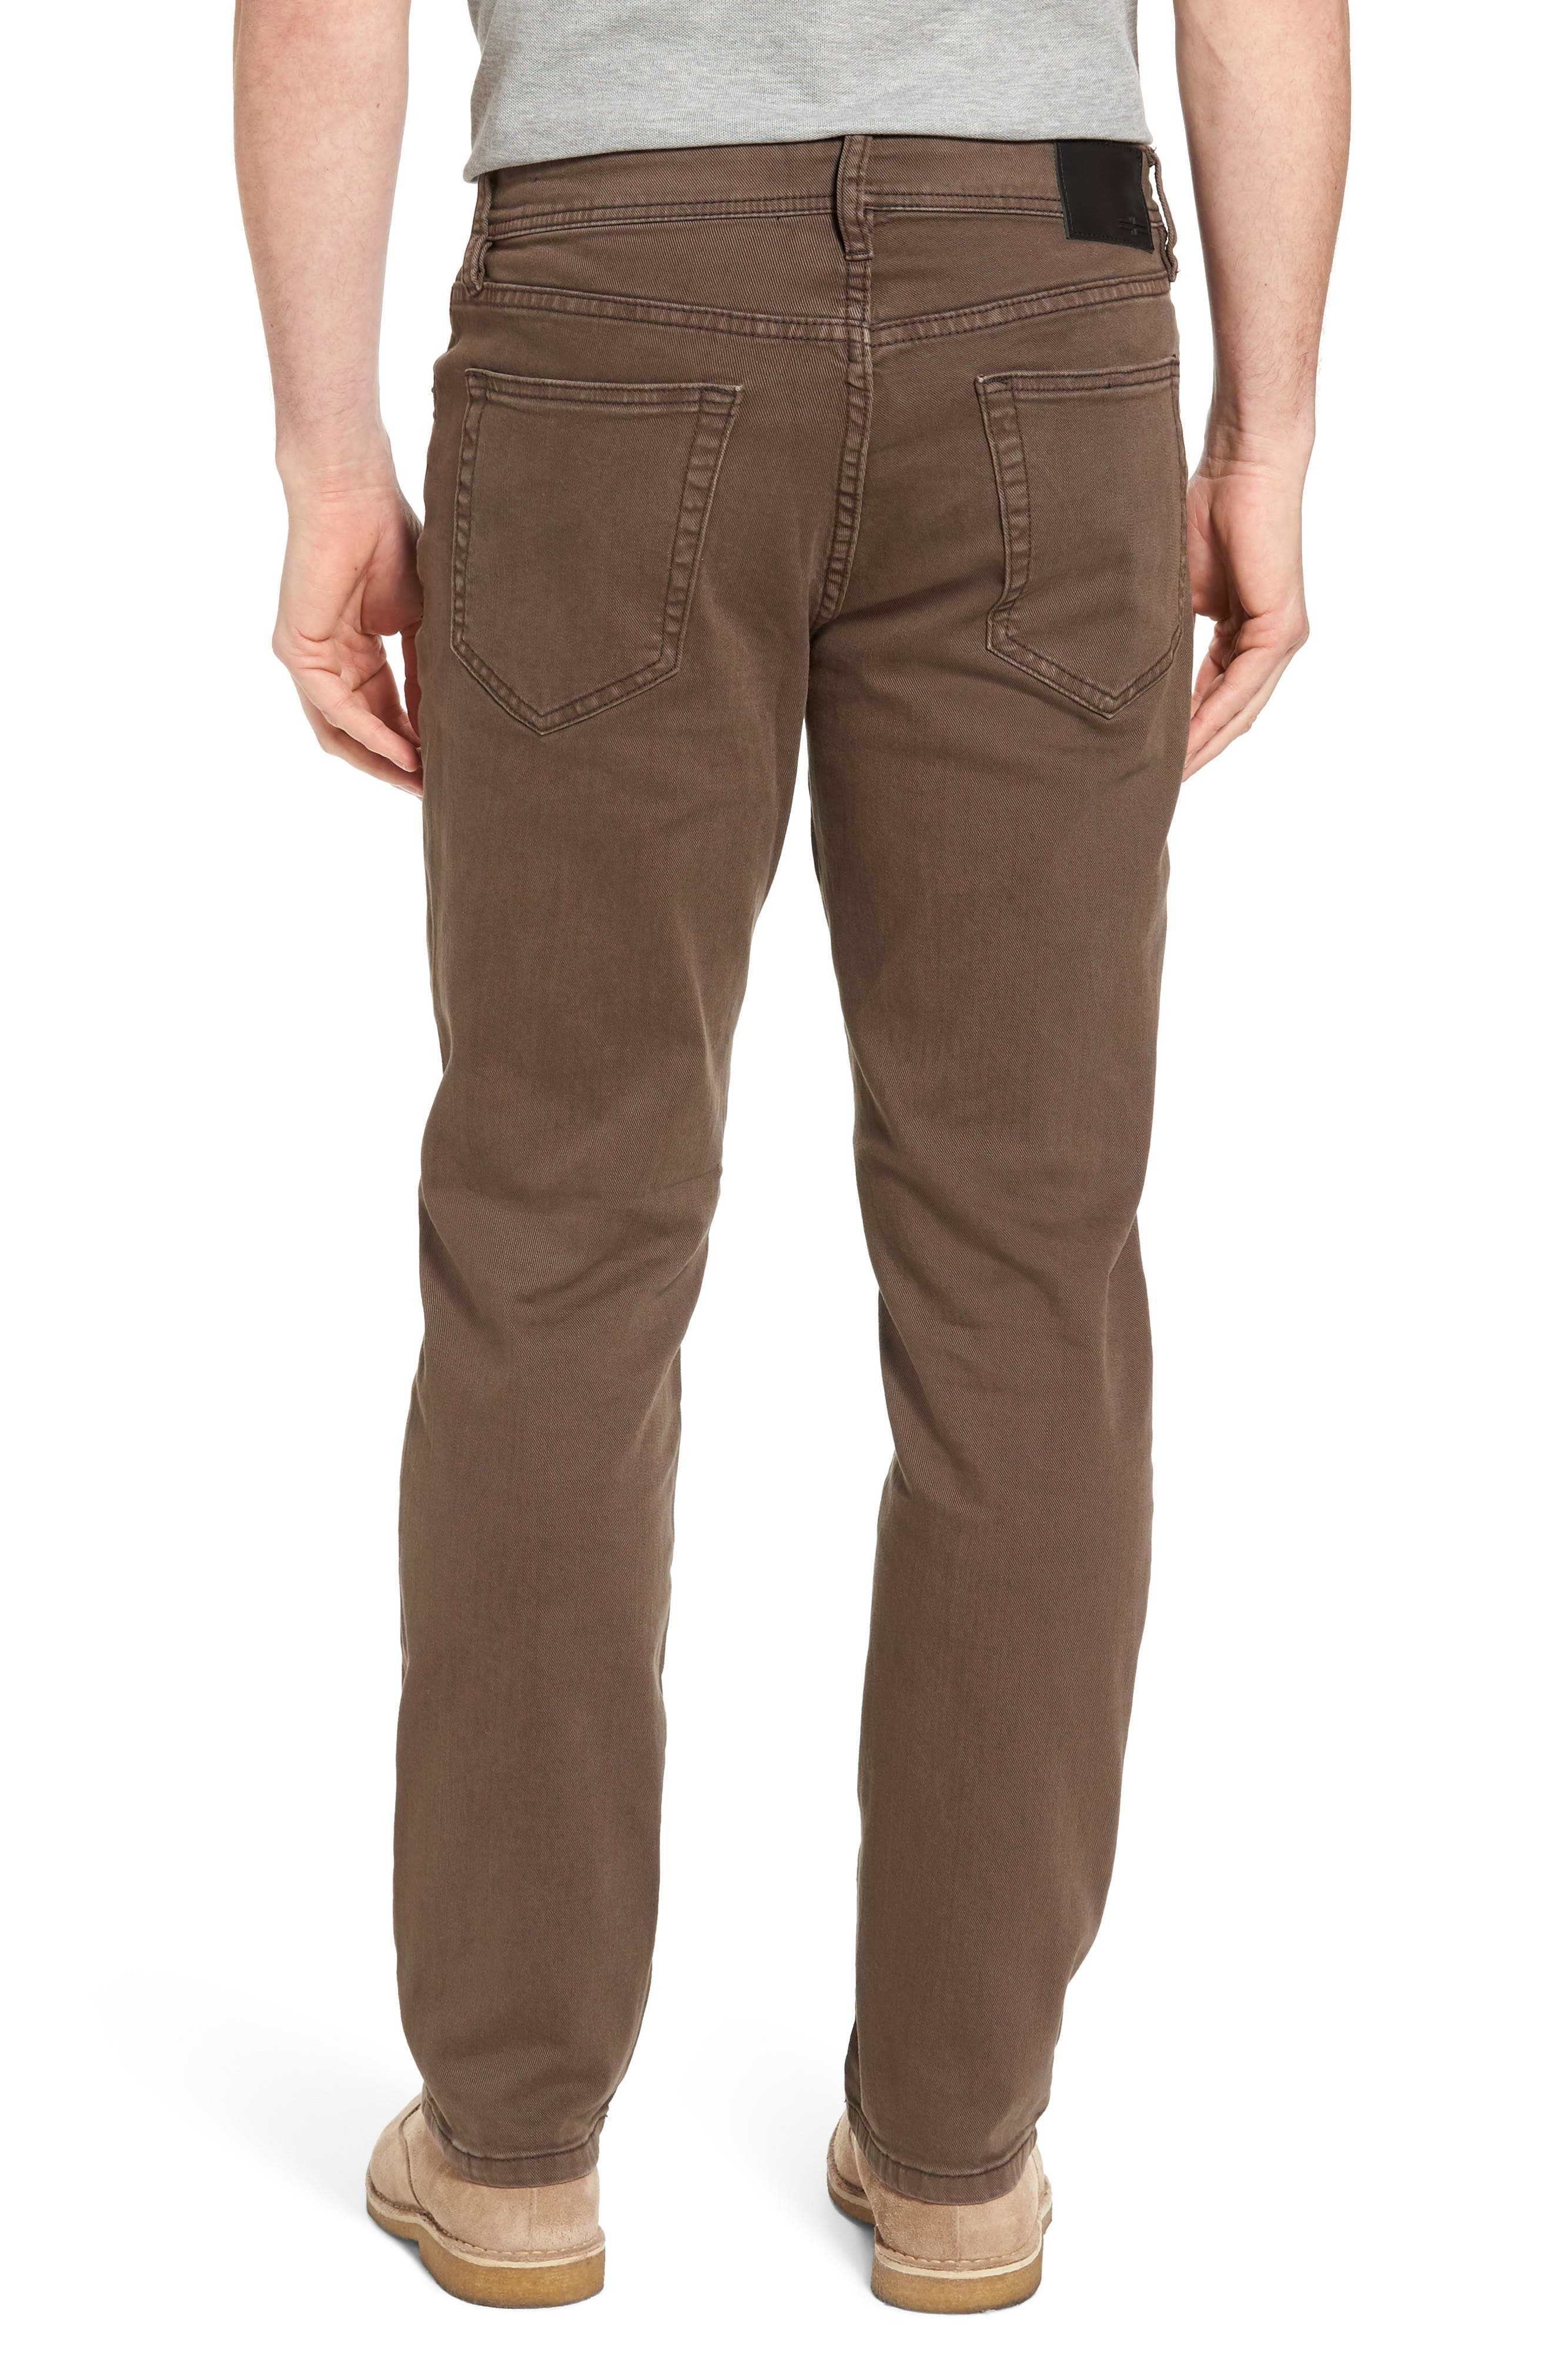 Jeans Co. Regent Relaxed Fit Jeans,                             Alternate thumbnail 2, color,                             Tobacco Leaf